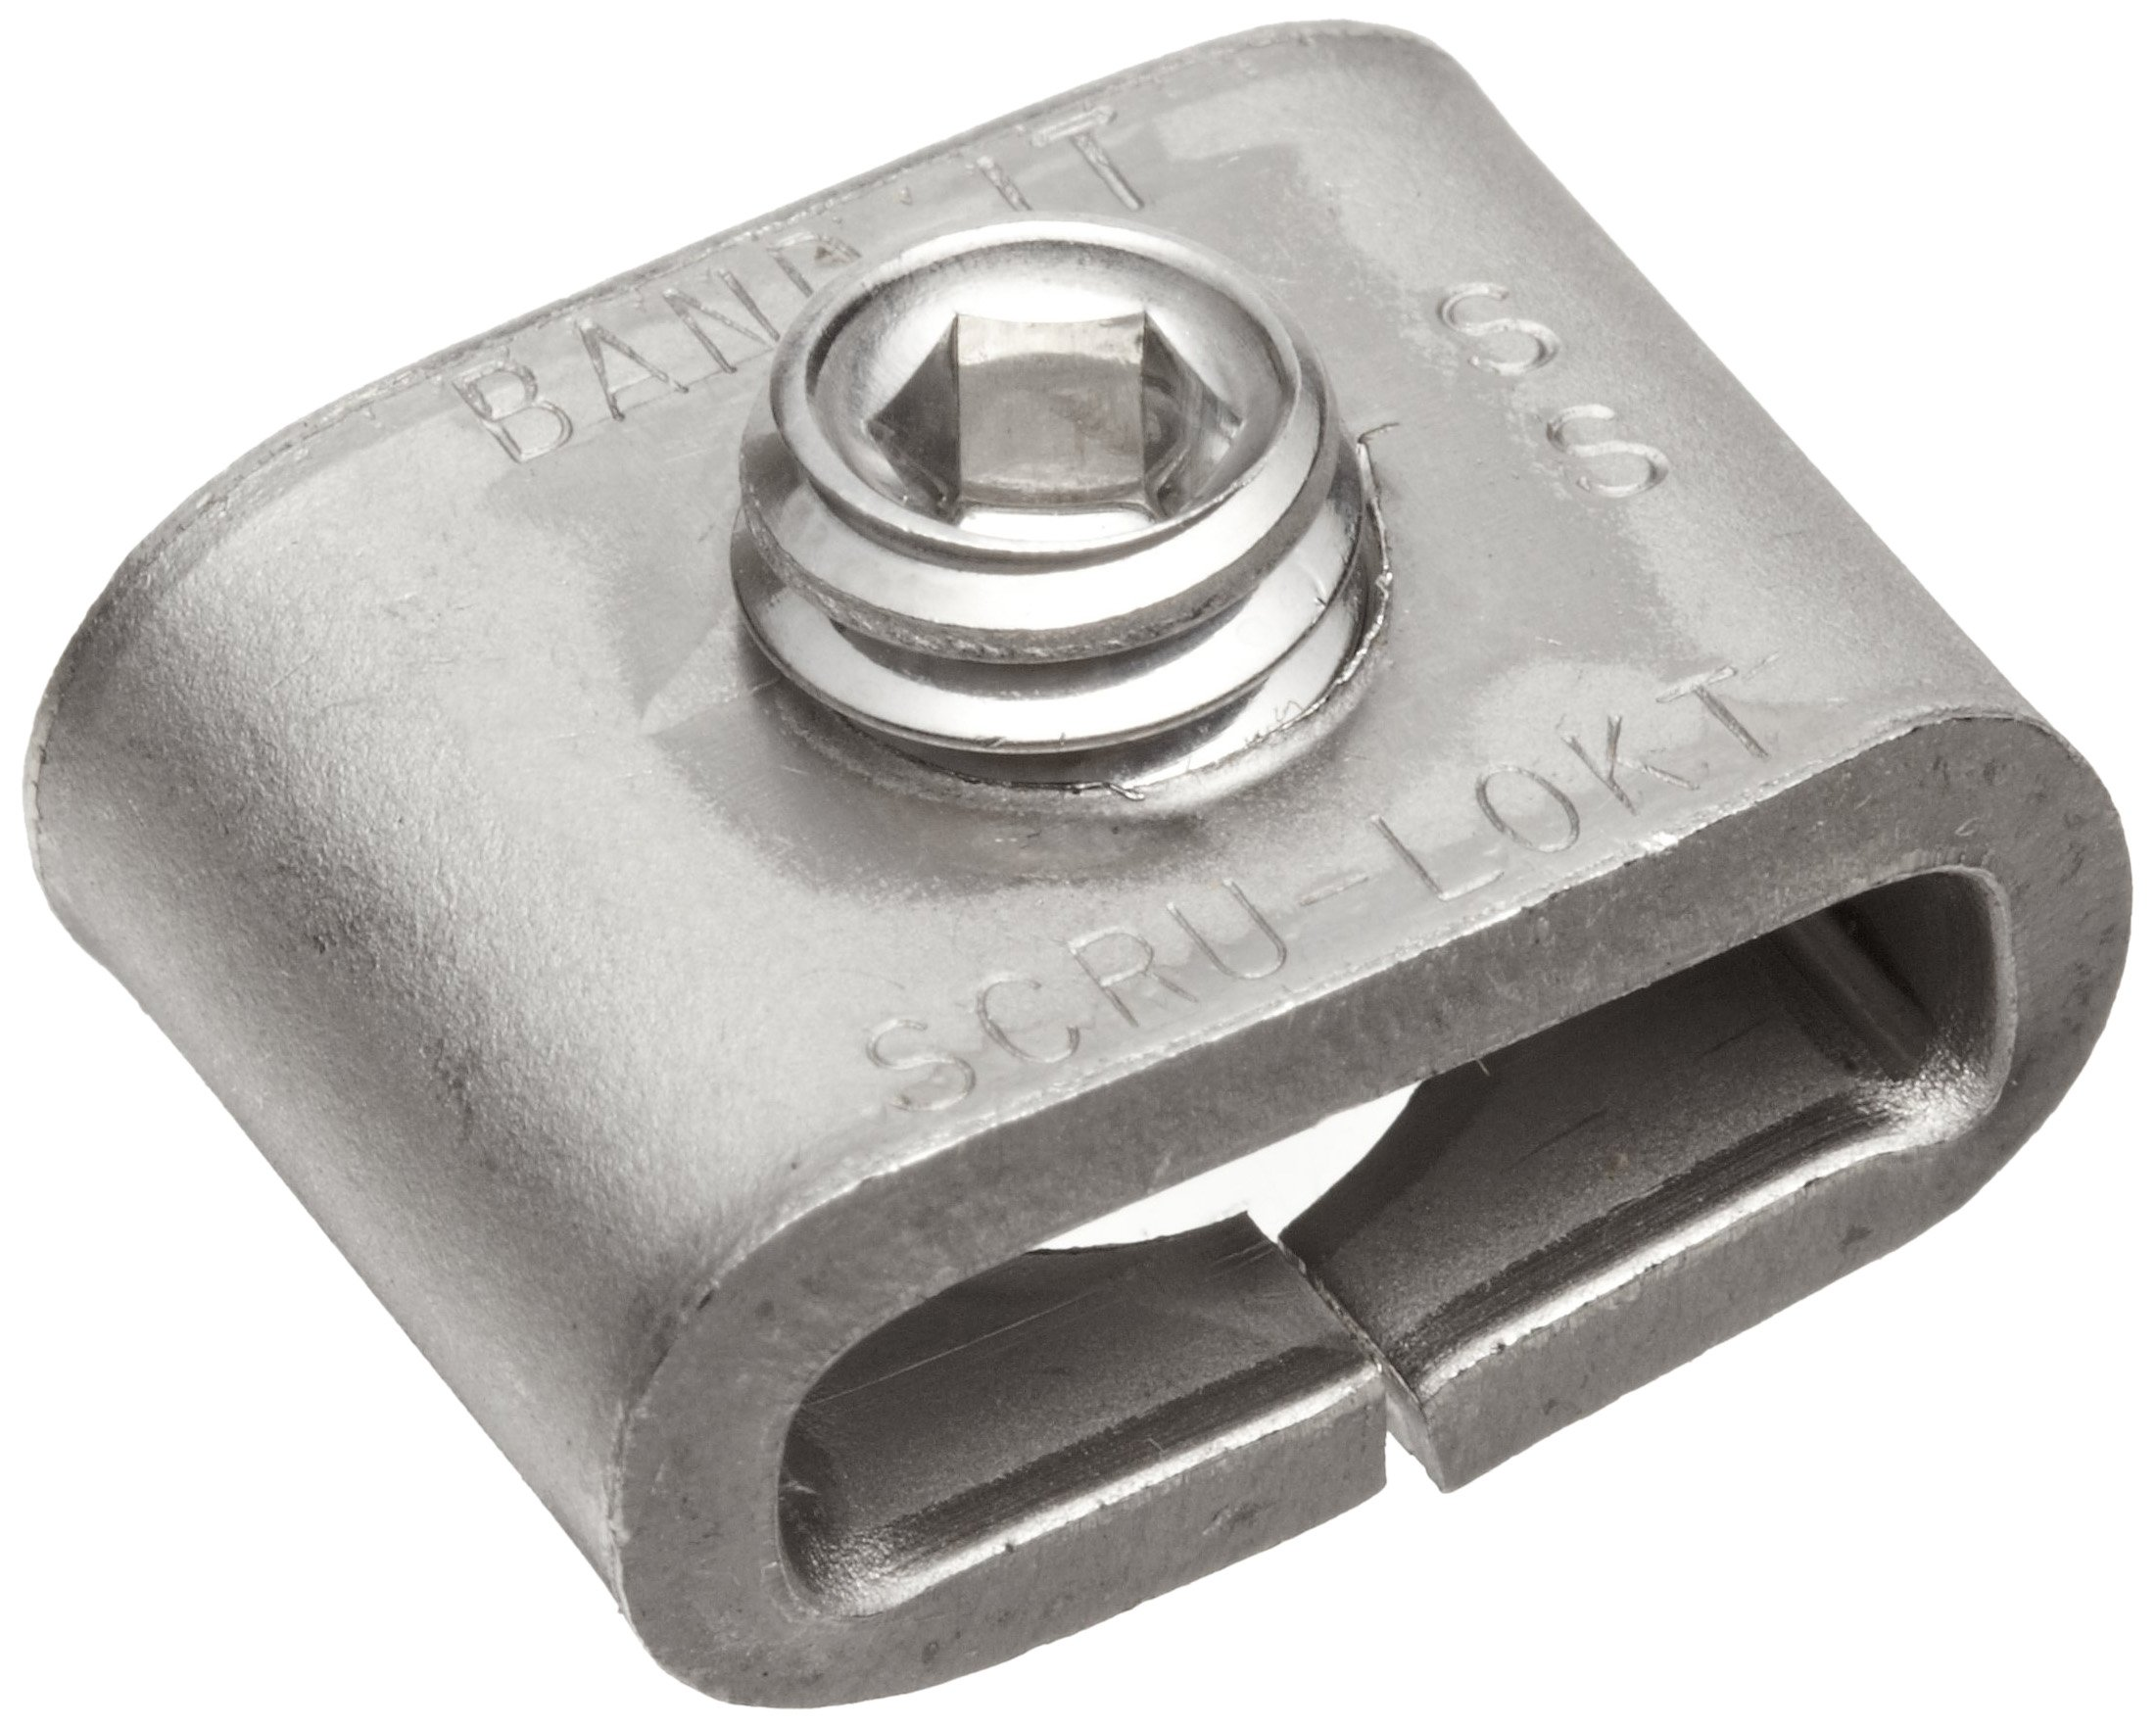 BAND-IT C72699 201 Stainless Steel Scru-Lokt Style Buckle, 3/4'' Width, 25 per Box by Band-It